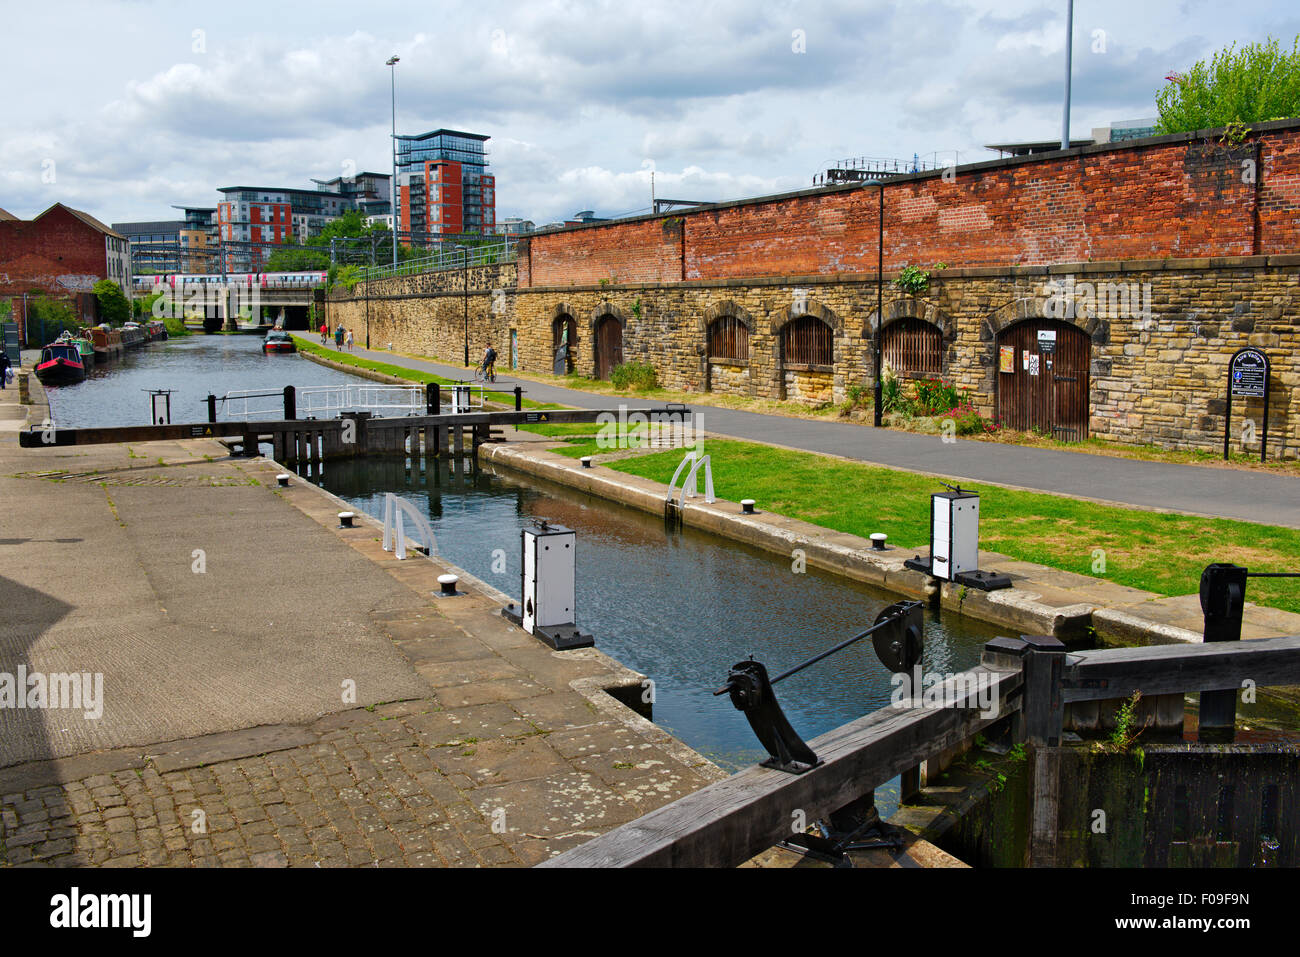 Lock in Leeds and Liverpool Canal in central Leeds, West Yorkshire, UK - Stock Image